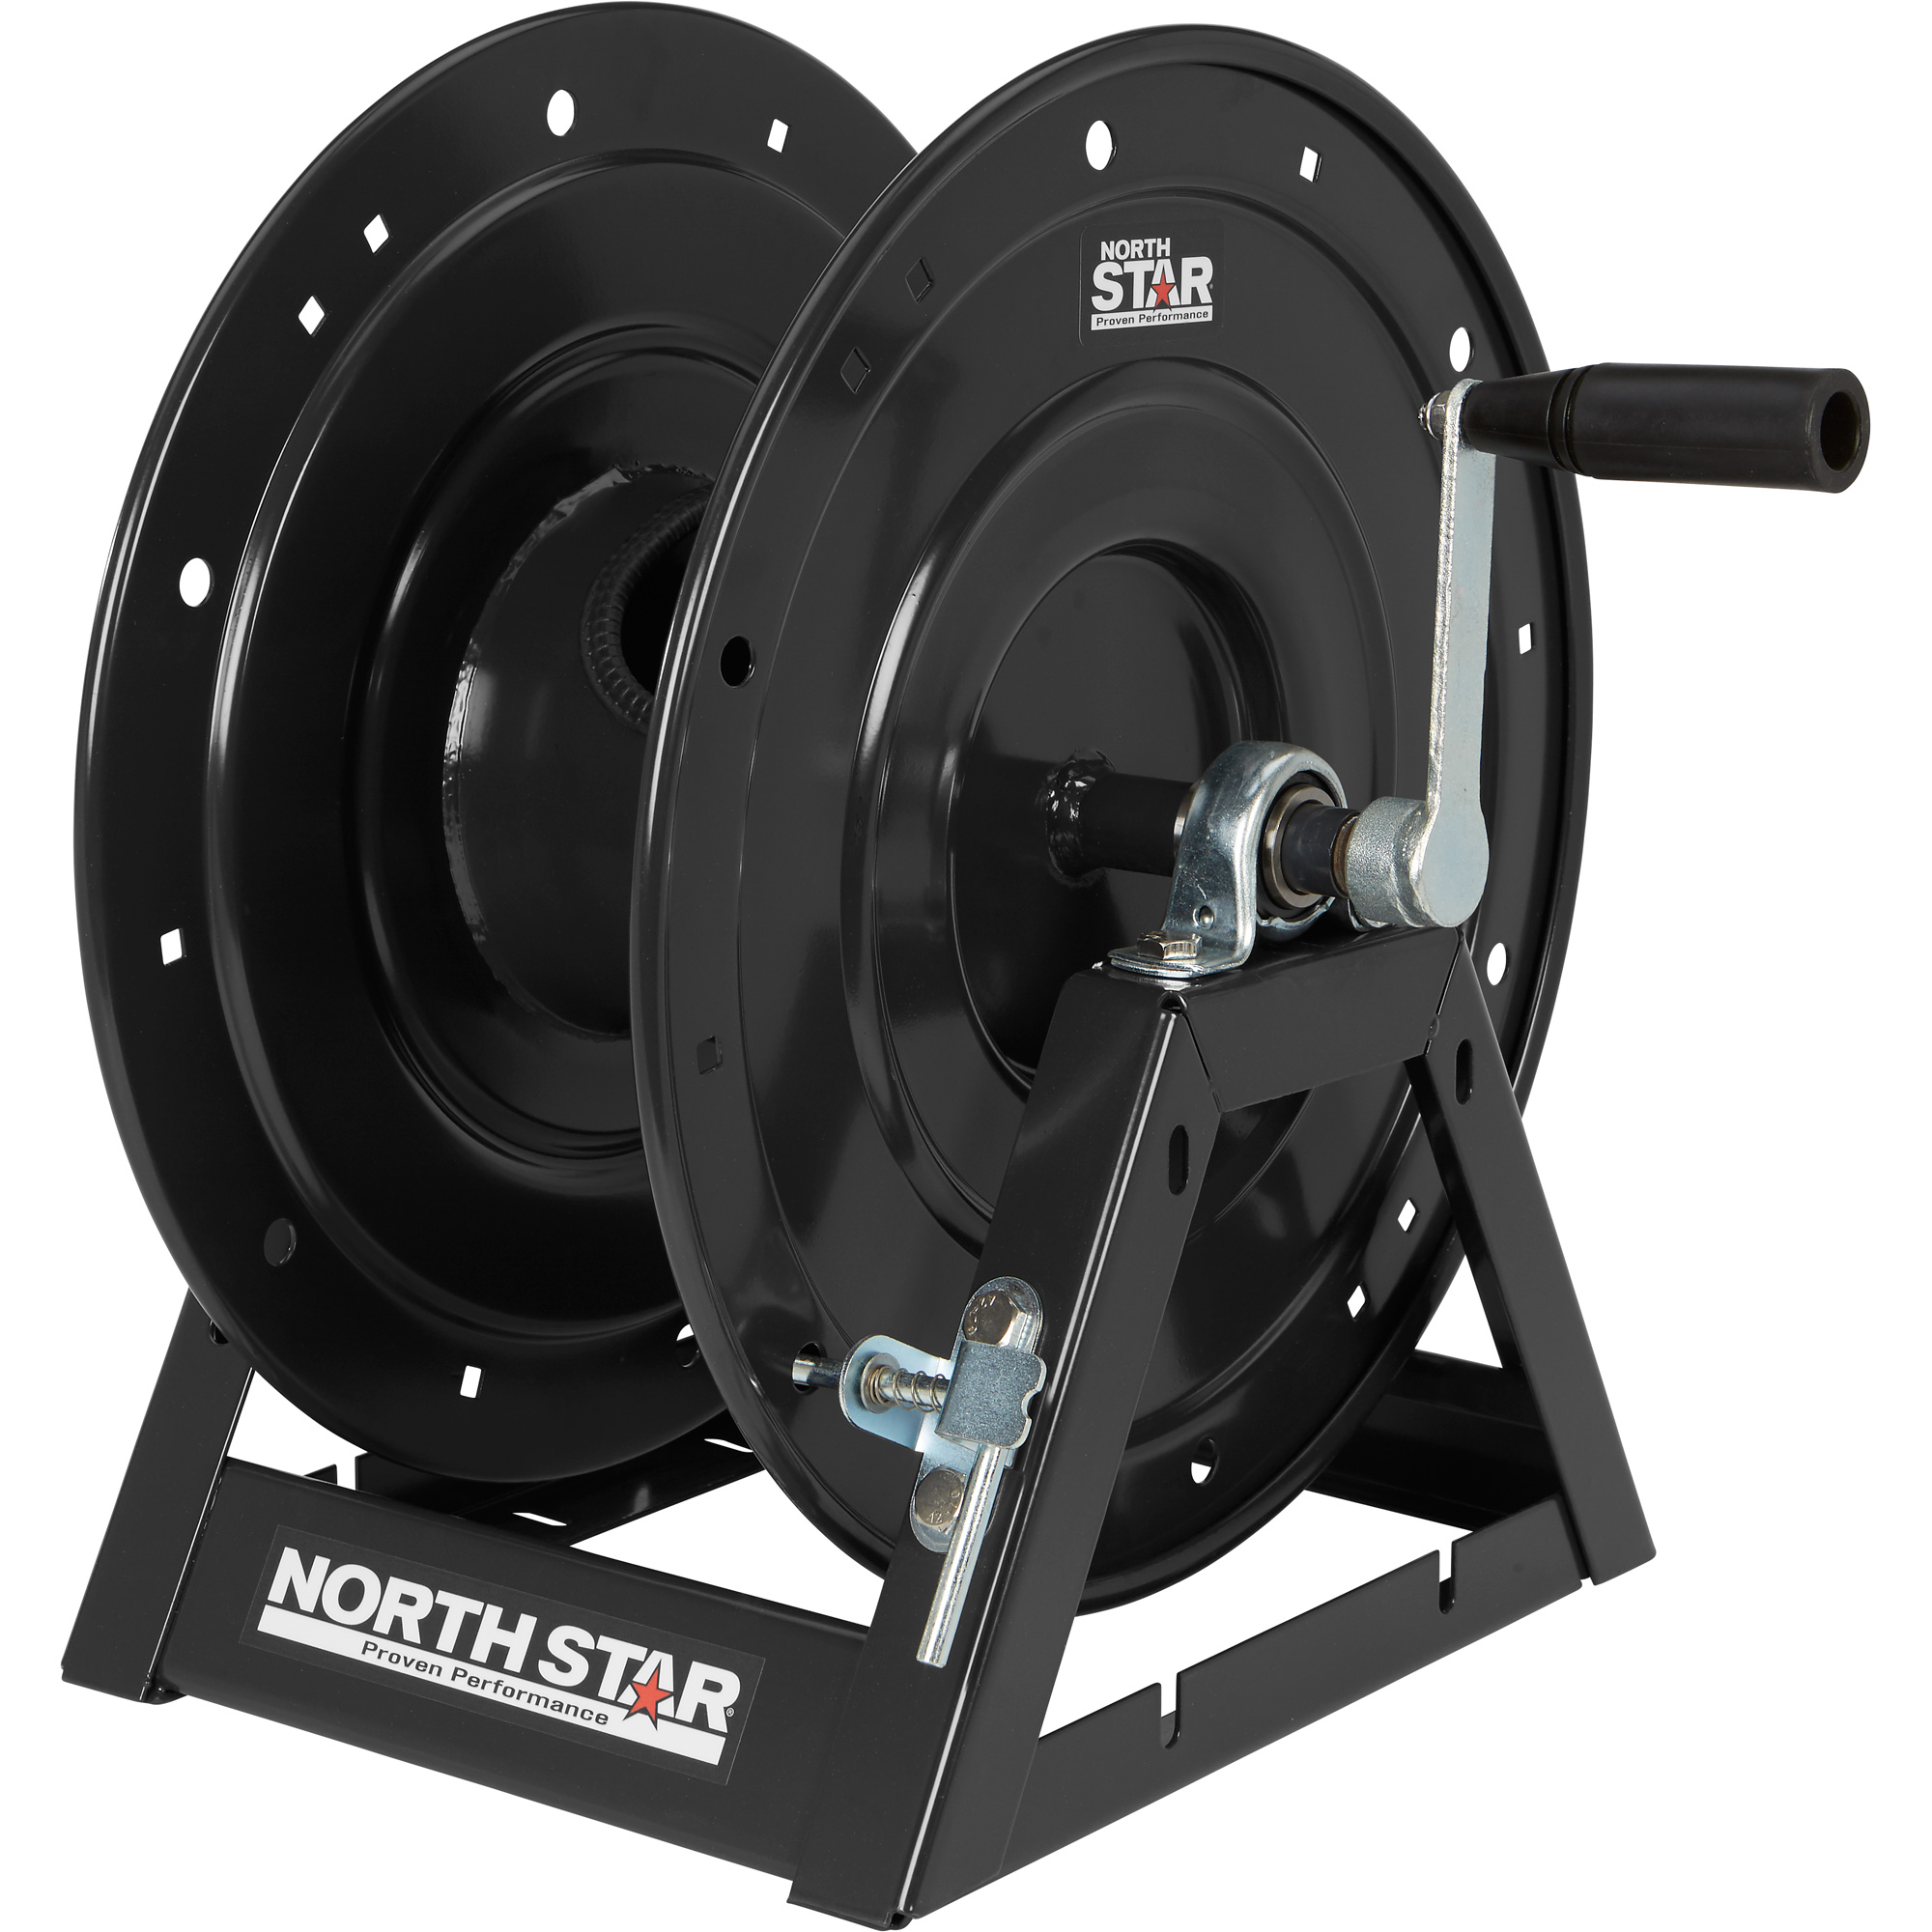 NorthStar 55791 Heavy-Duty A-Frame Hose Reel - 5000 PSI 150ft. Capacity